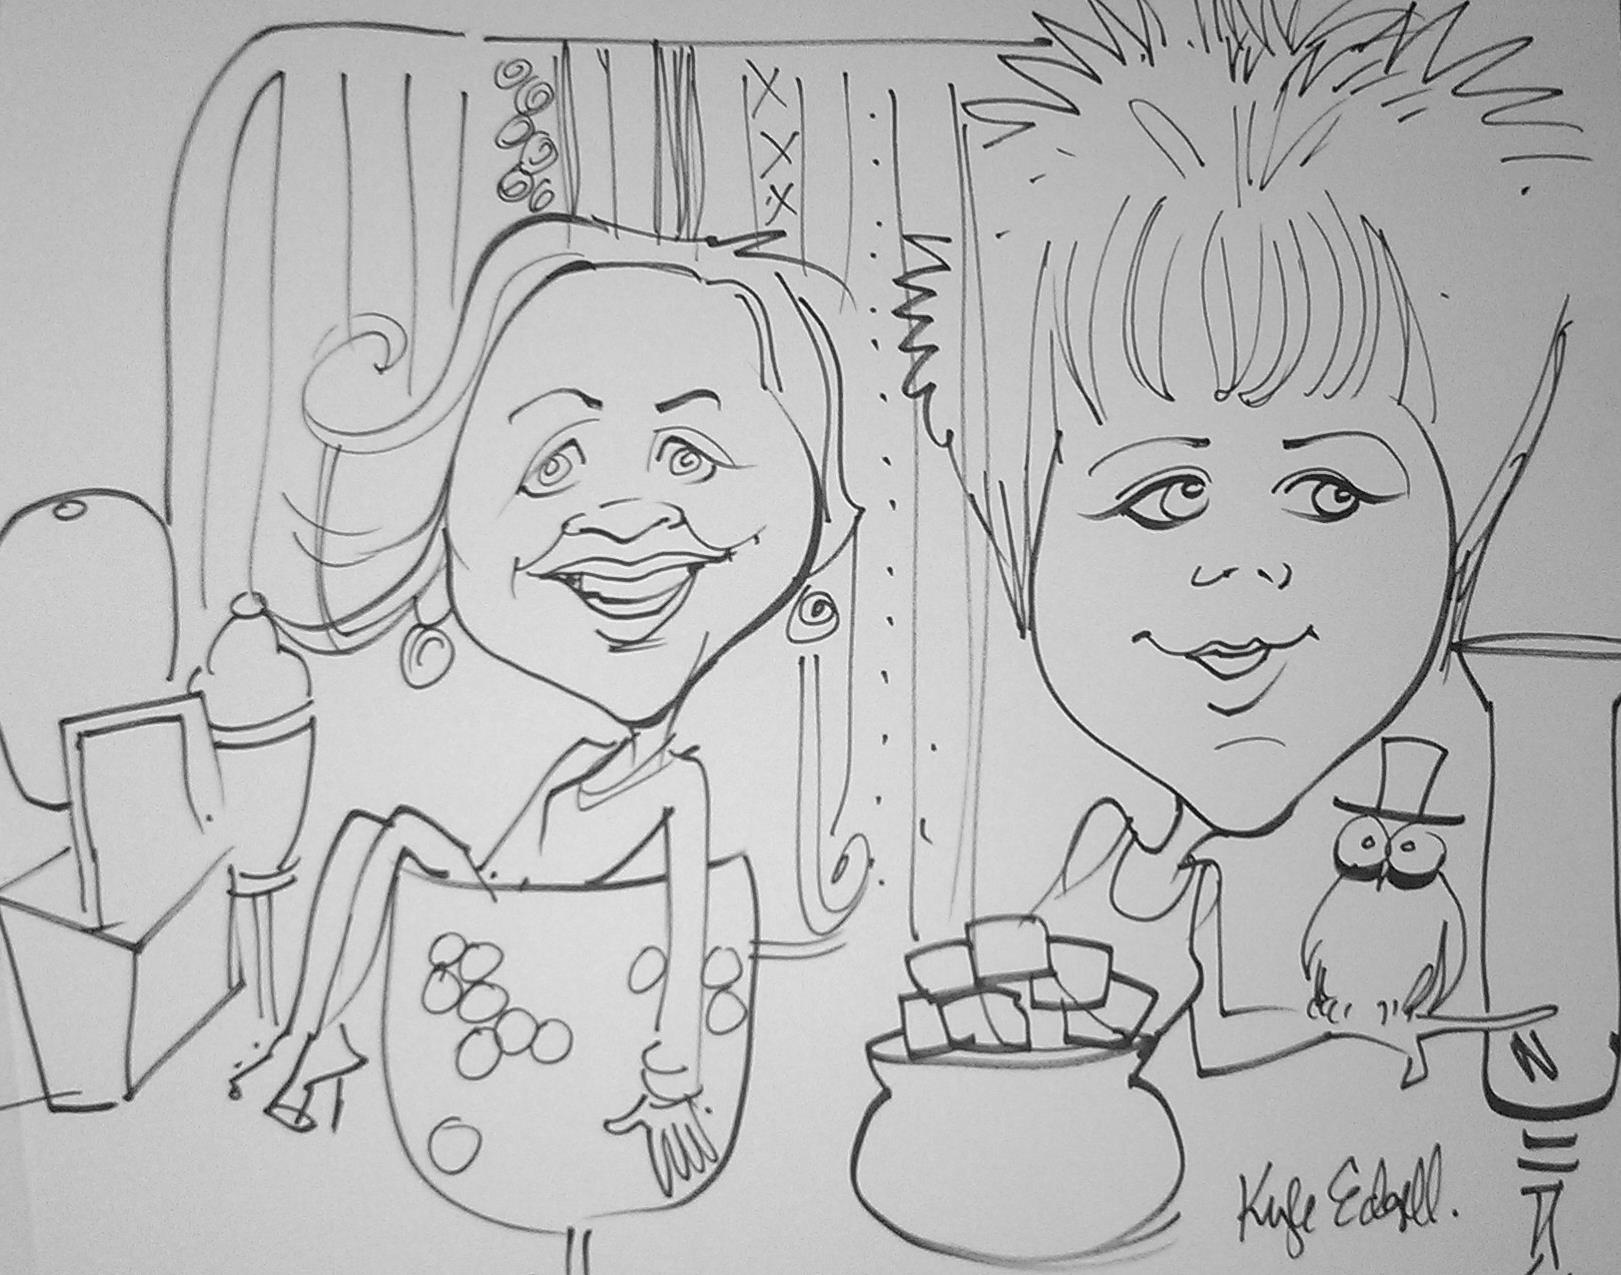 Art by:  K  yle Edgell Caricature Entertainment